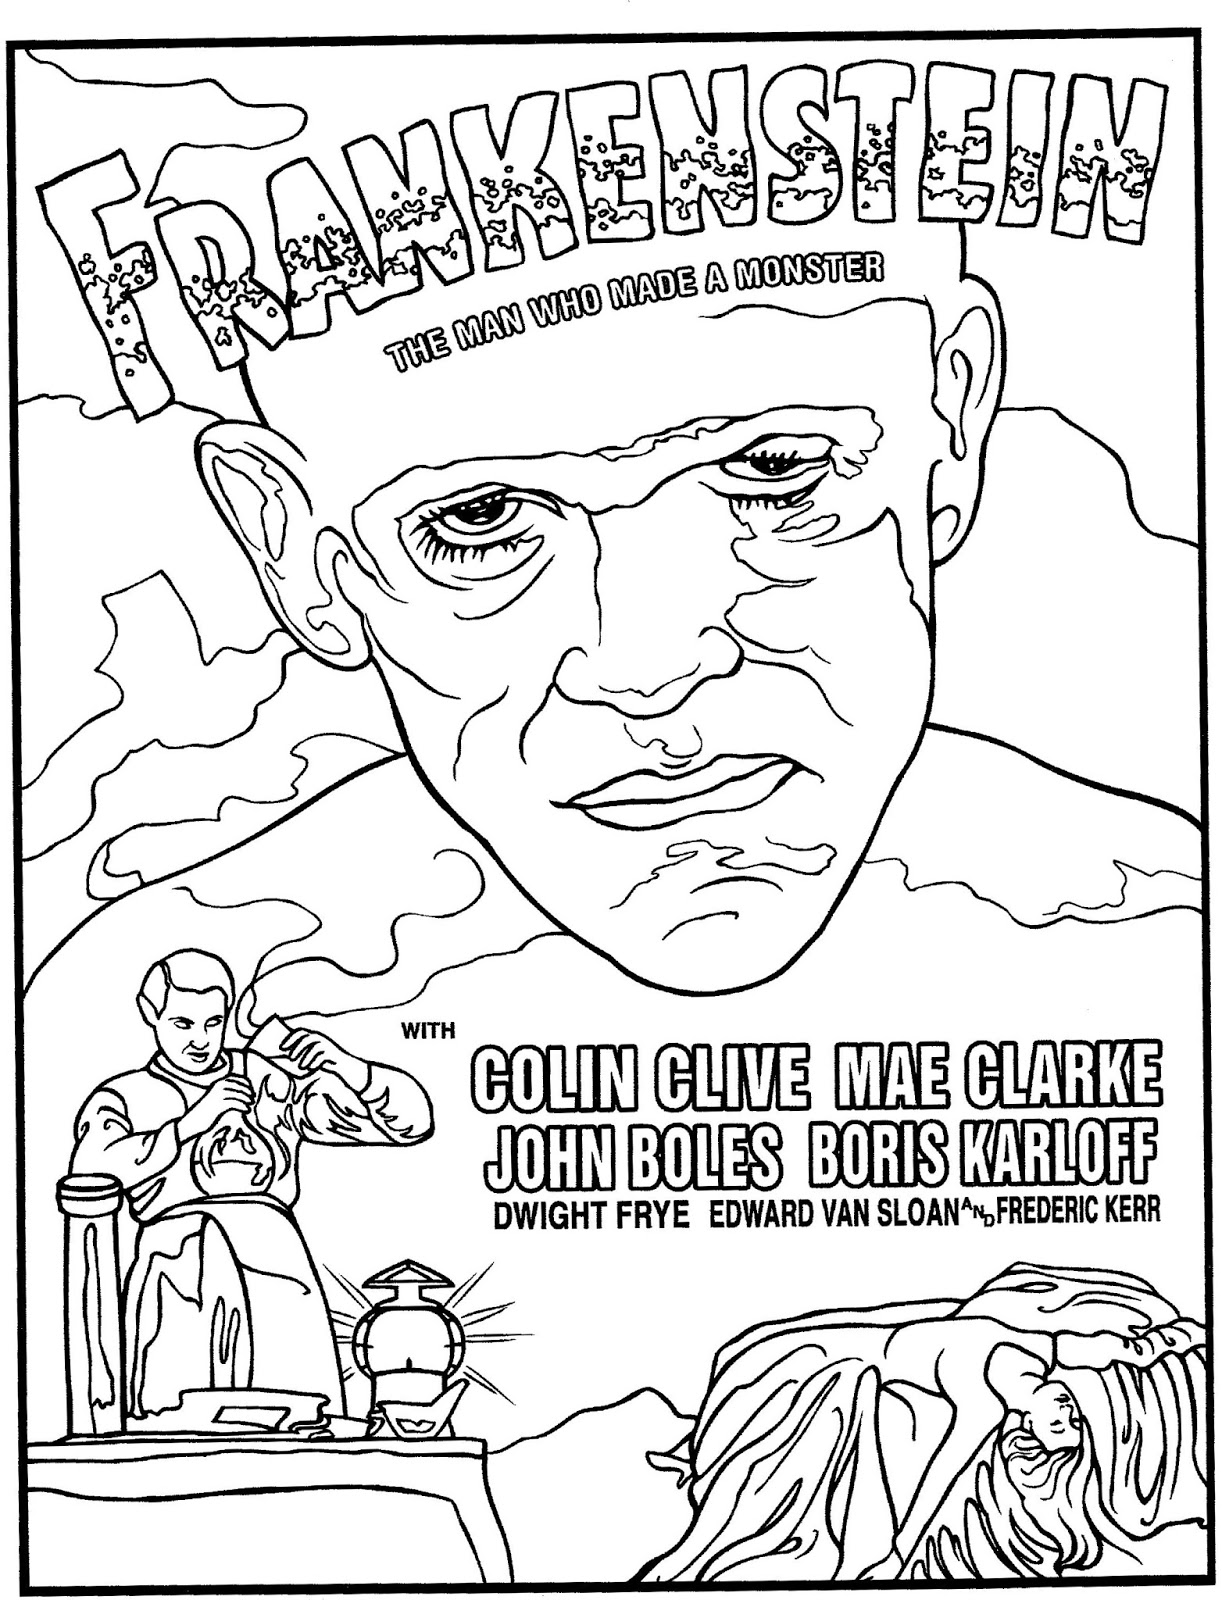 Mostly Paper Dolls Too!: FRANKENSTEIN Coloring Page